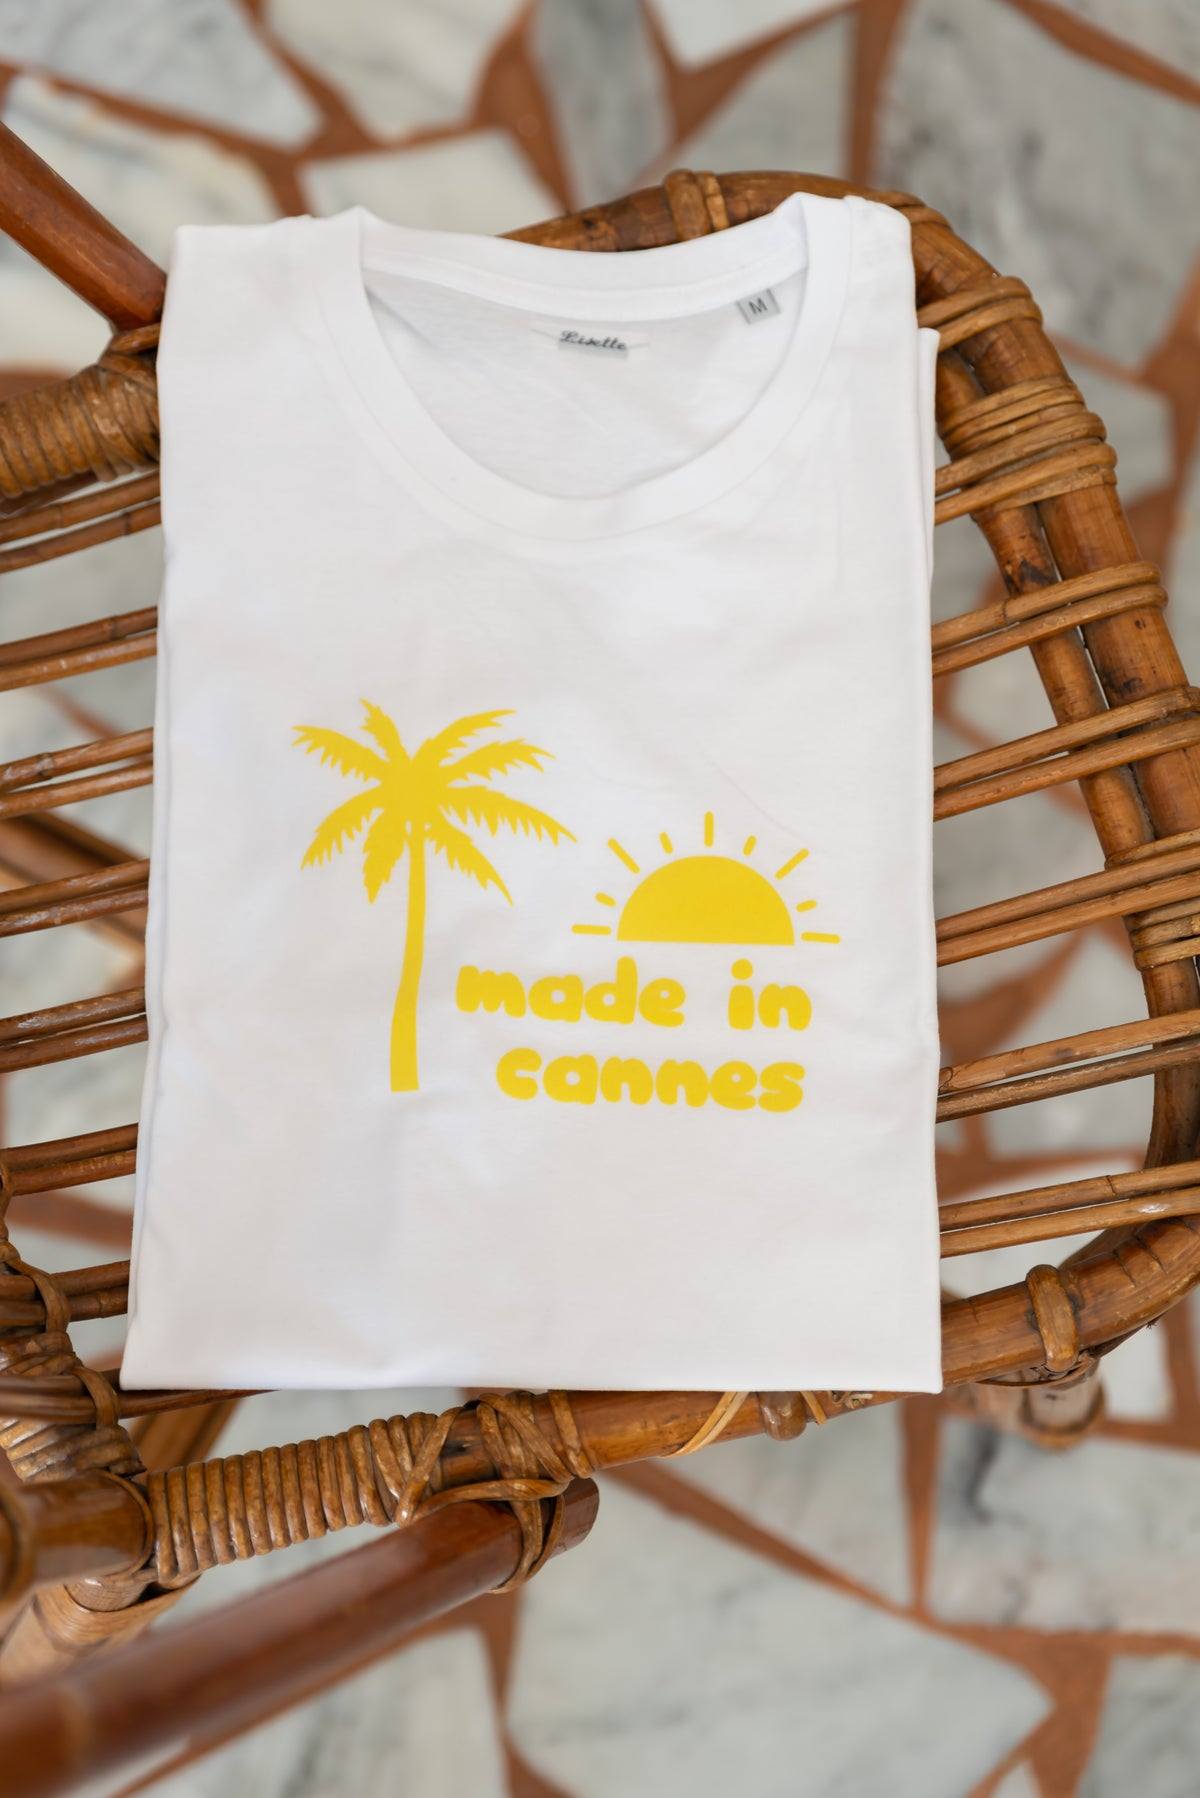 Image of Tee-shirt made in cannes